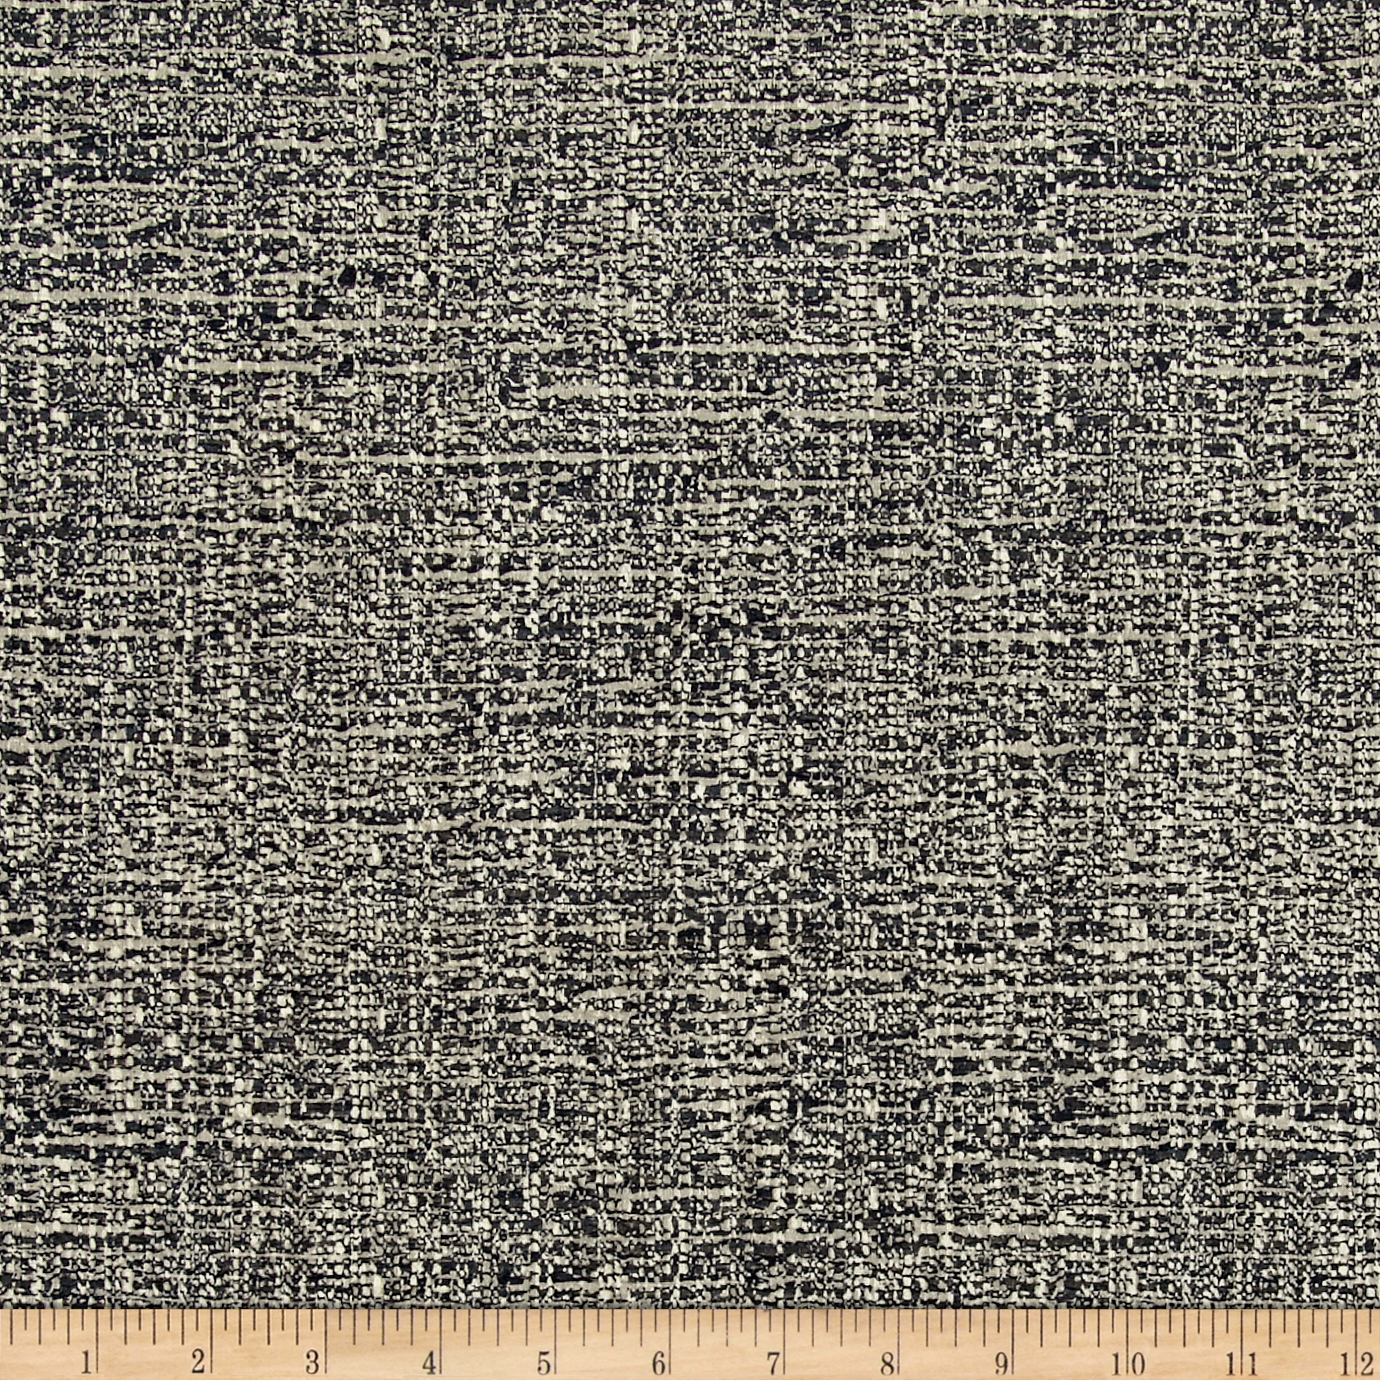 Ramtex Coco Suede Driftwood Fabric by Ramtex in USA